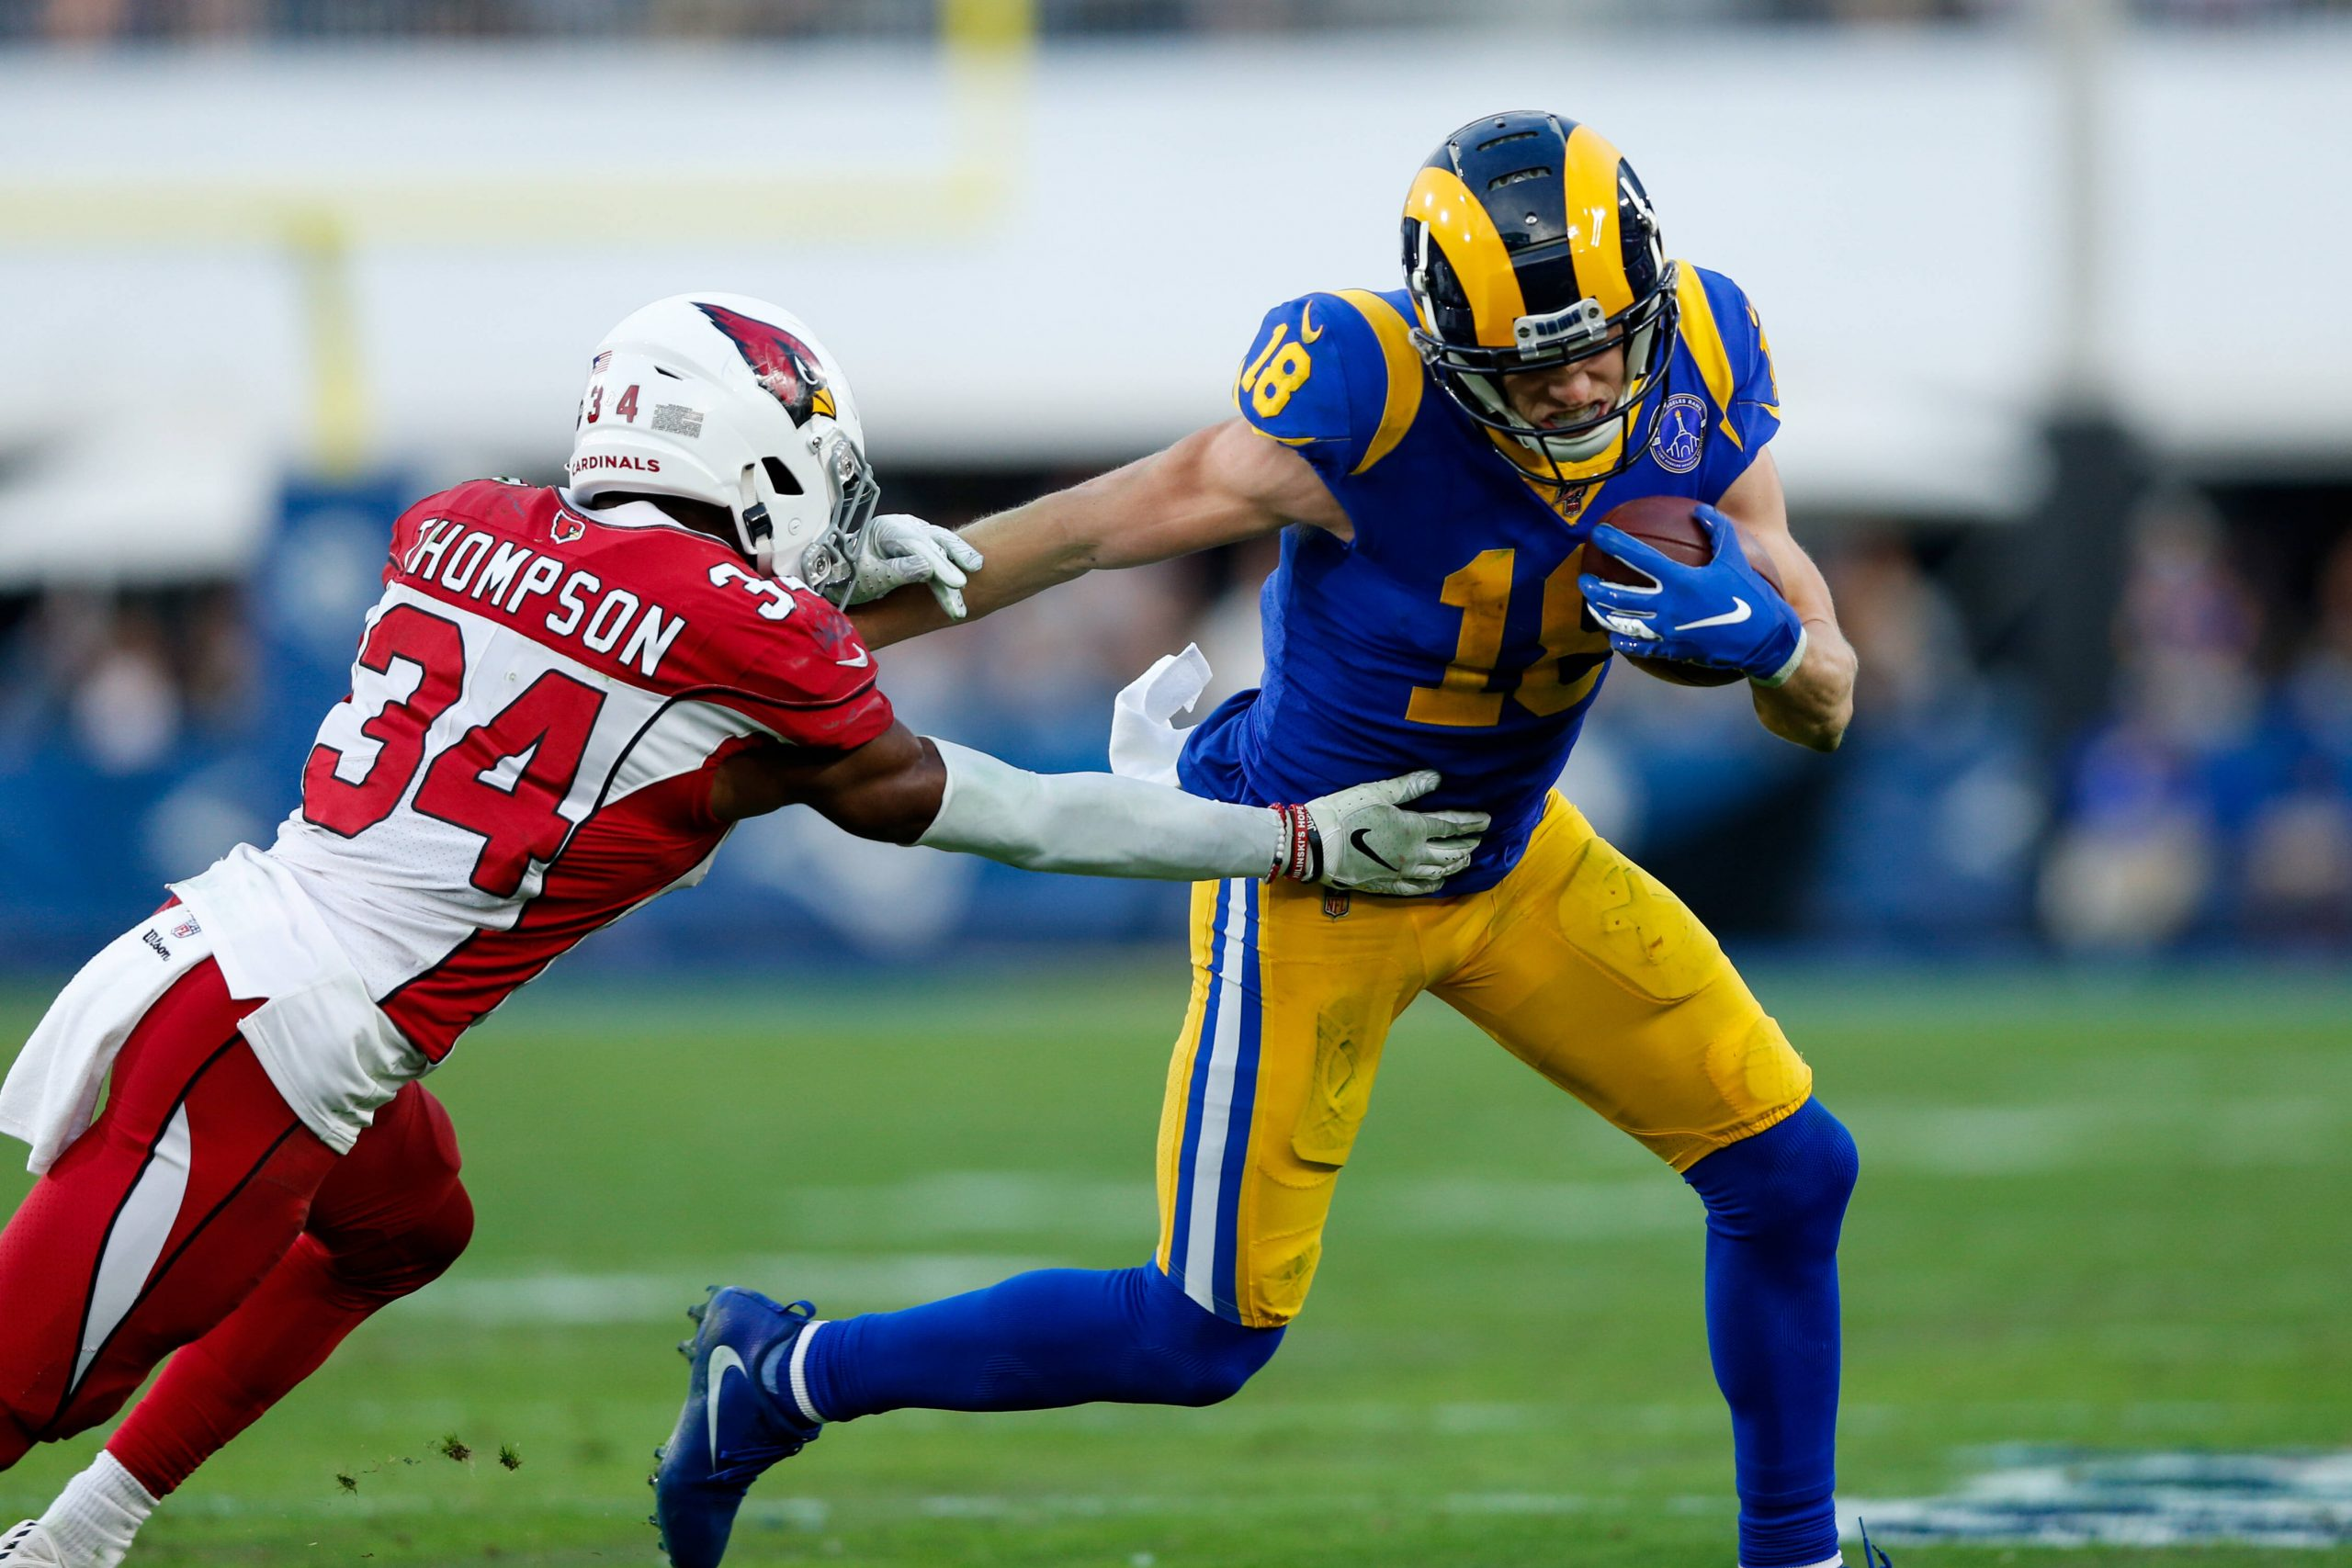 LOS ANGELES, CA - DECEMBER 29: Los Angeles Rams wide receiver Cooper Kupp (18) catches a pass and gets tackled by Arizon